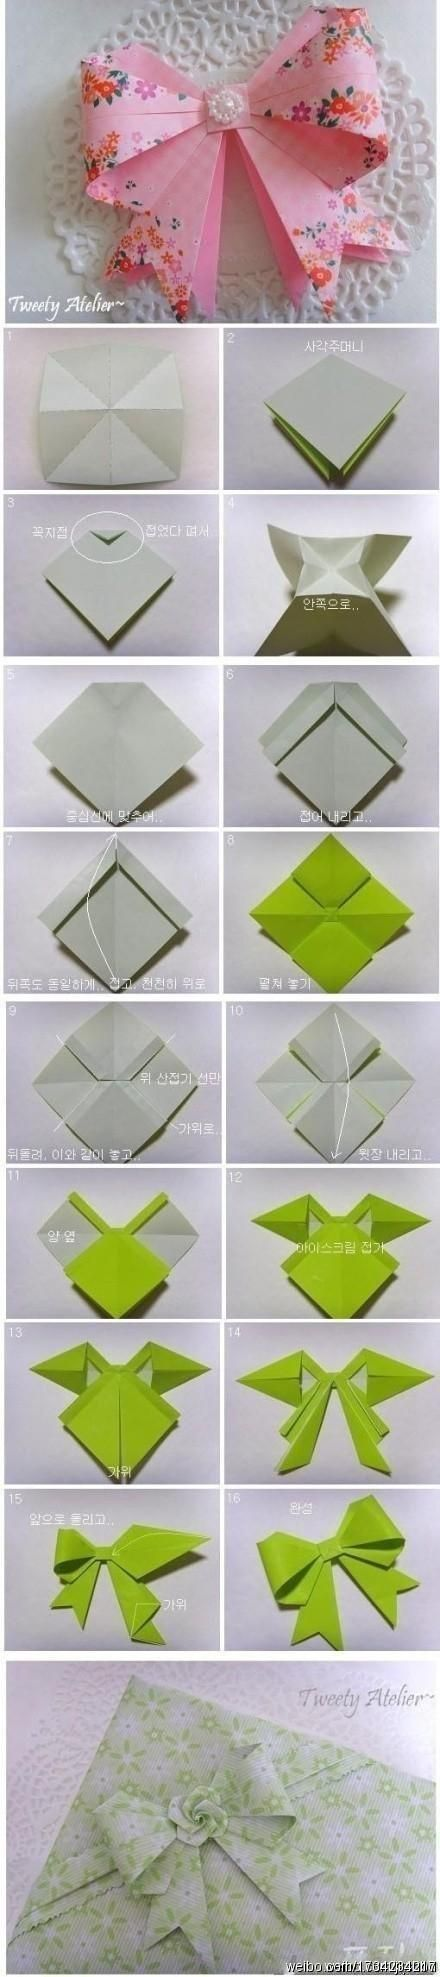 bow tutorial!: Papercraft, Diy Crafts, Bow Origami, Paper Bows, Paper Ribbon, Origami Ribbon, Paper Crafts, Origami Bows